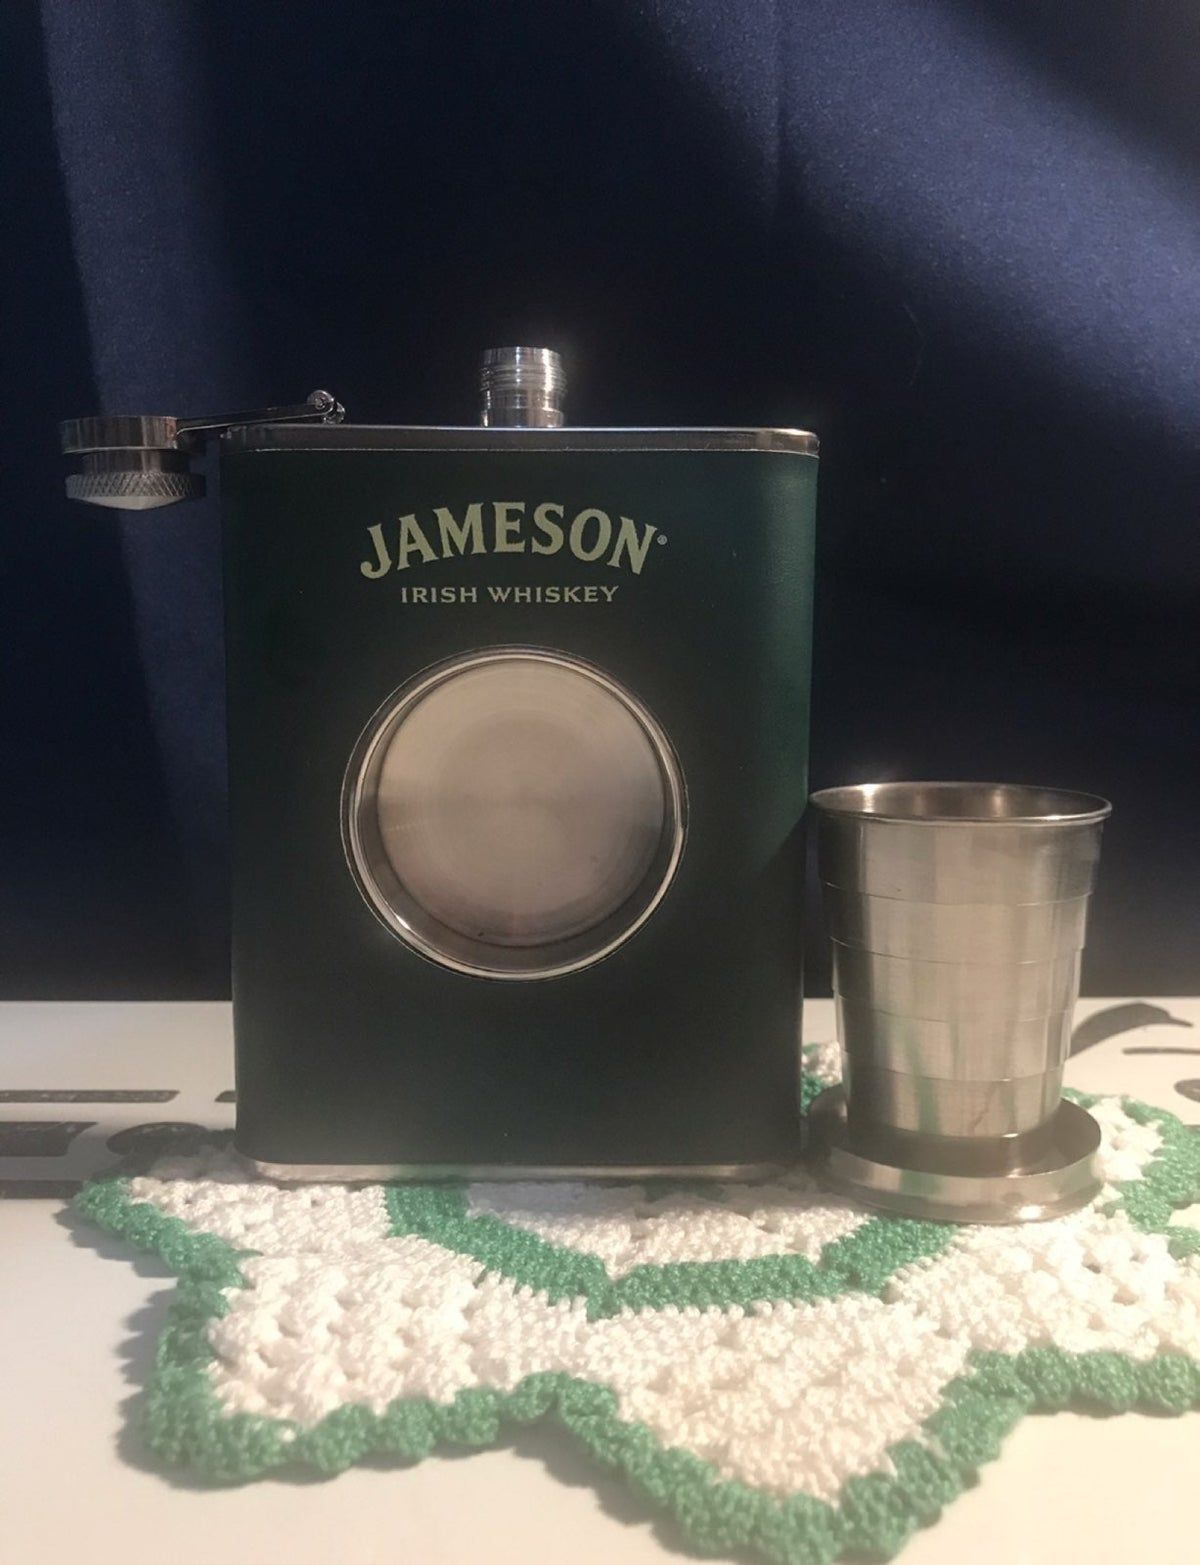 Jameson Irish Whiskey Flask W Shot glass #irishwhiskey Jameson Irish Whiskey Flask W Shot glass #irishwhiskey Jameson Irish Whiskey Flask W Shot glass #irishwhiskey Jameson Irish Whiskey Flask W Shot glass #irishwhiskey Jameson Irish Whiskey Flask W Shot glass #irishwhiskey Jameson Irish Whiskey Flask W Shot glass #irishwhiskey Jameson Irish Whiskey Flask W Shot glass #irishwhiskey Jameson Irish Whiskey Flask W Shot glass #irishwhiskey